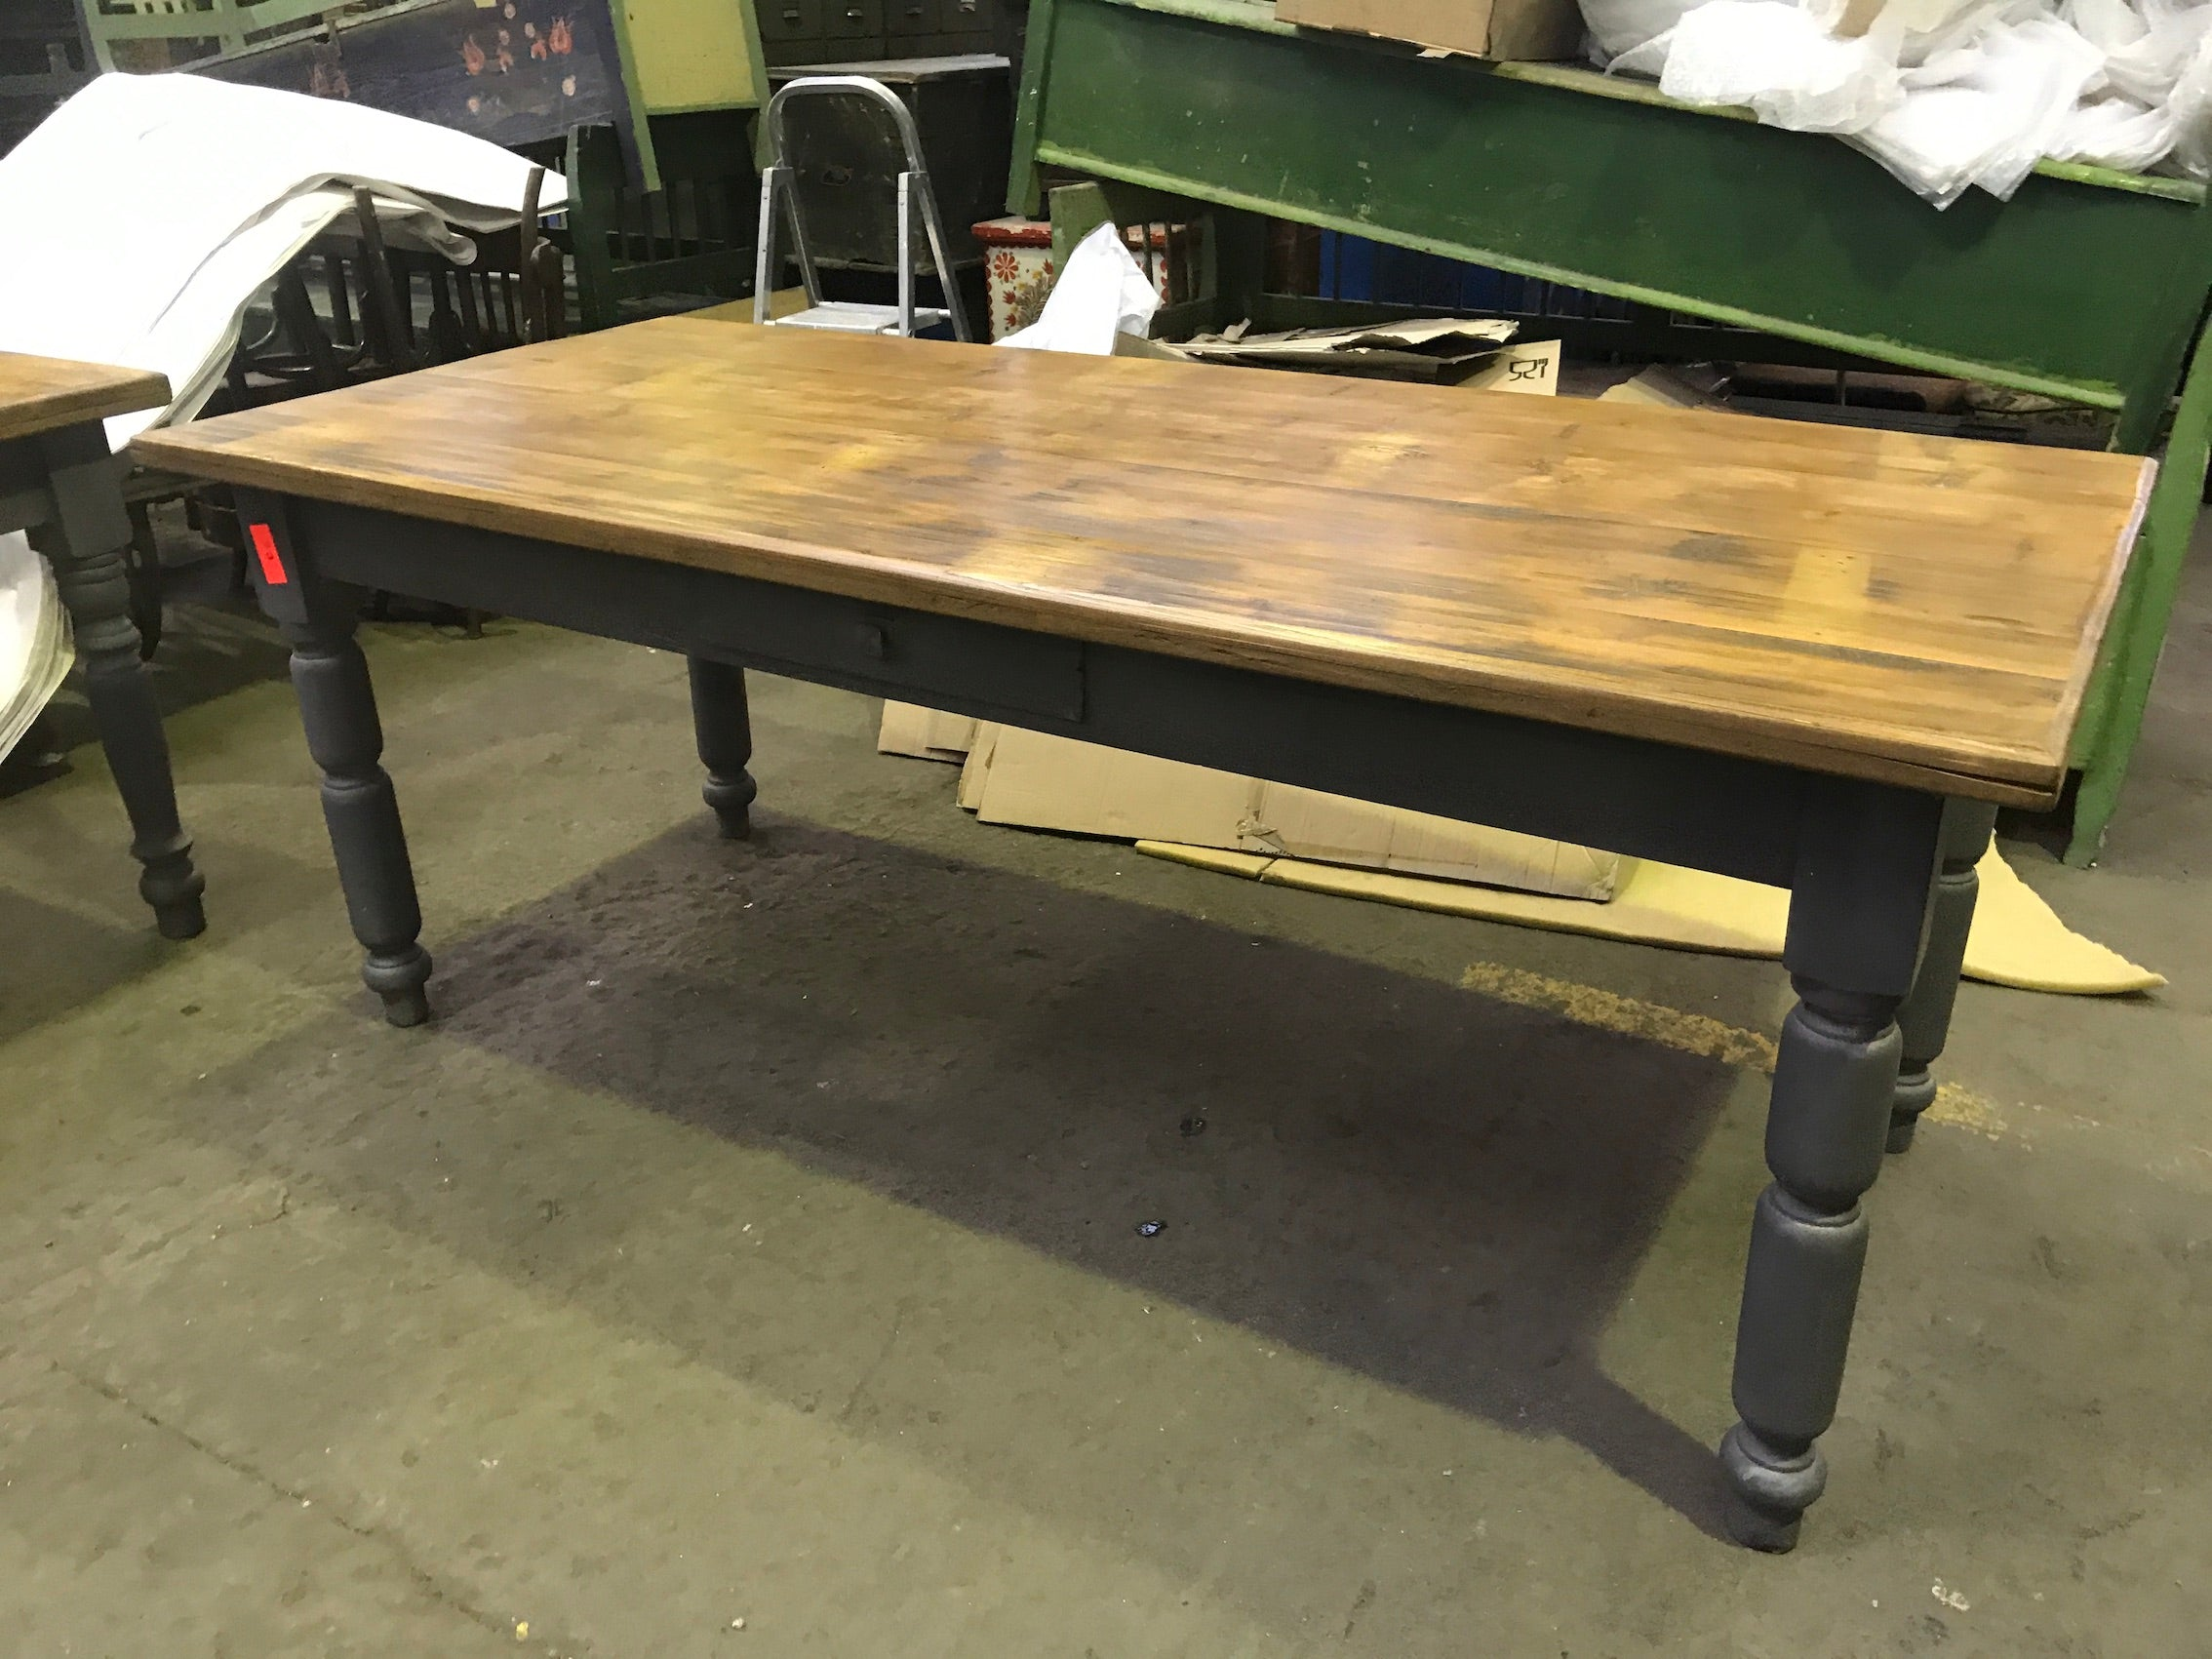 Vintage industrial European FARM kitchen dining table #2265 2mt